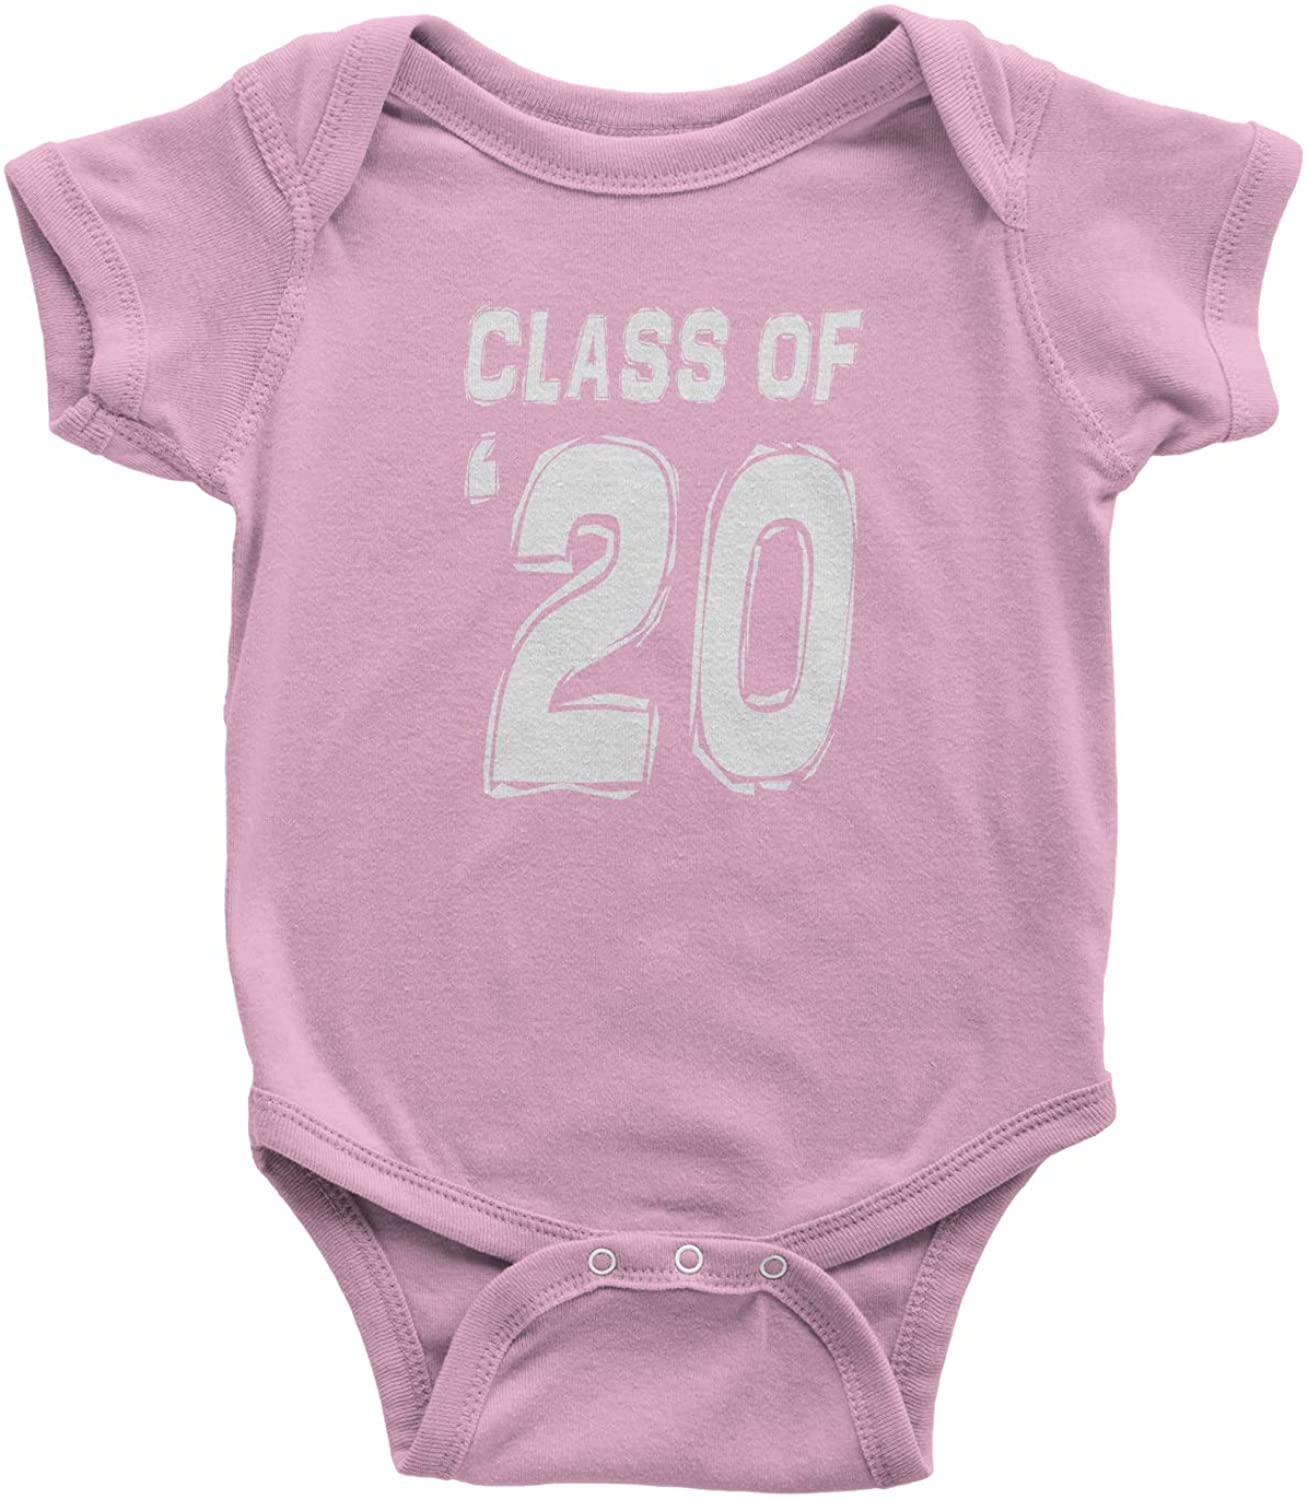 Expression Tees Class of 2020 Graduation Infant One-Piece Romper Bodysuit